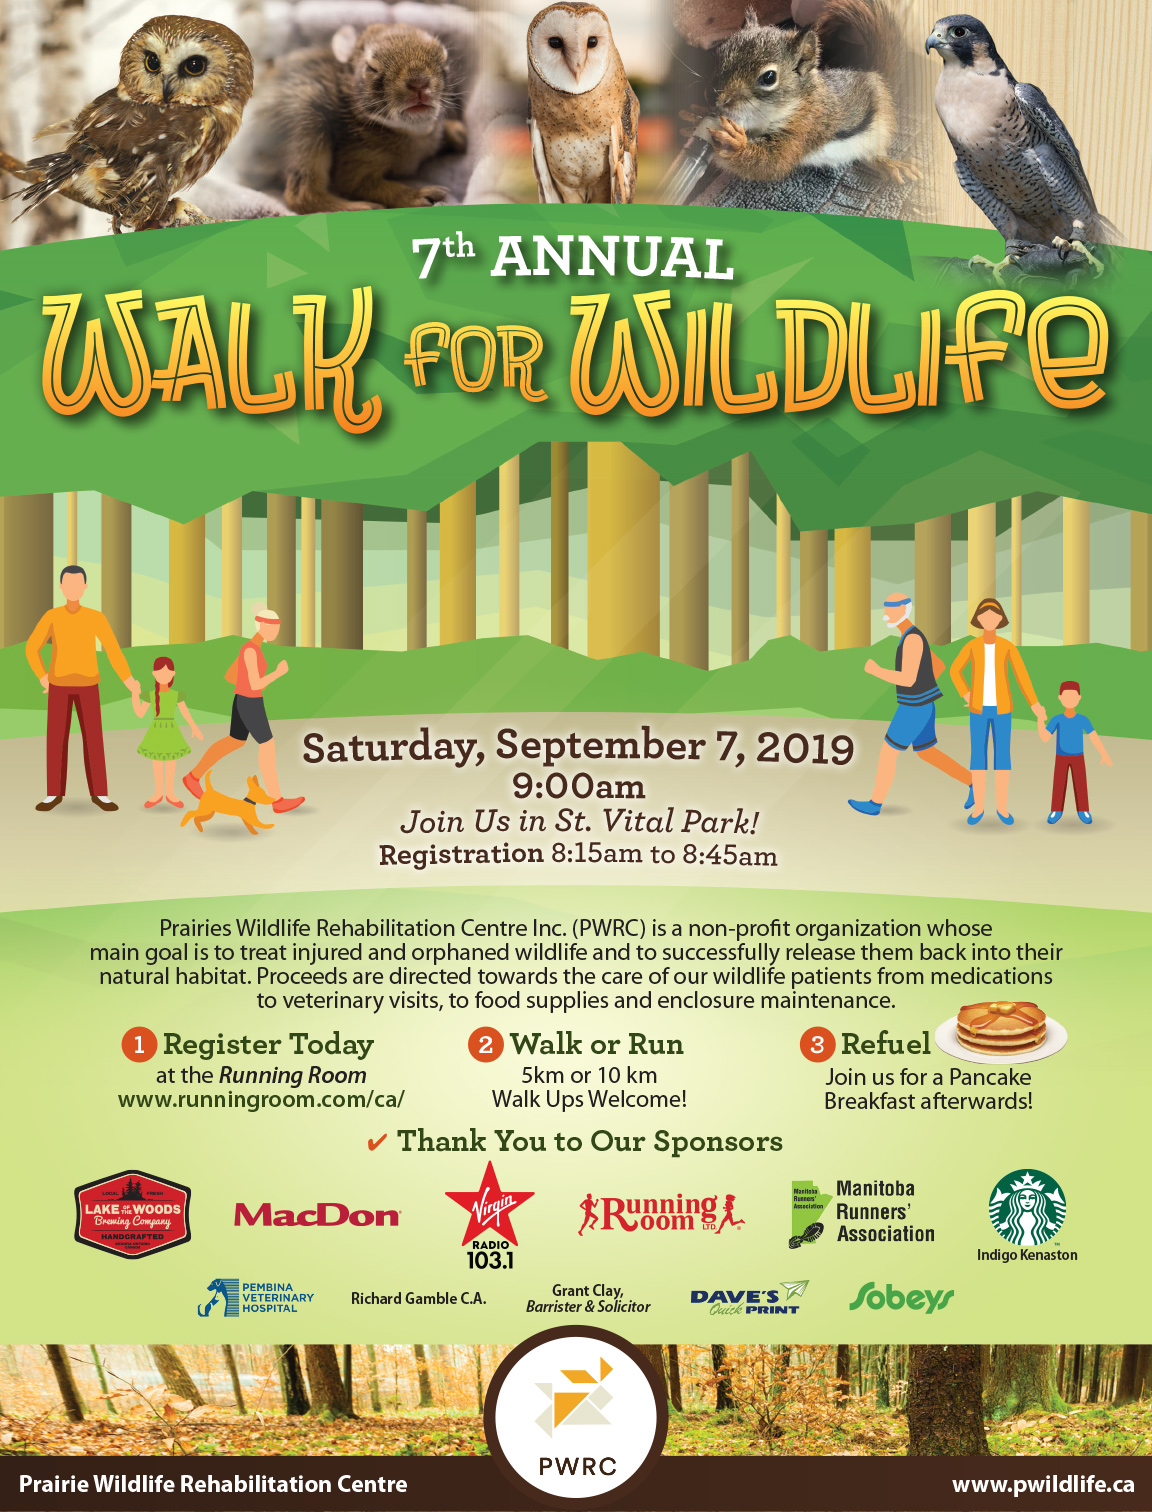 7th Annual Walk For Wildlife